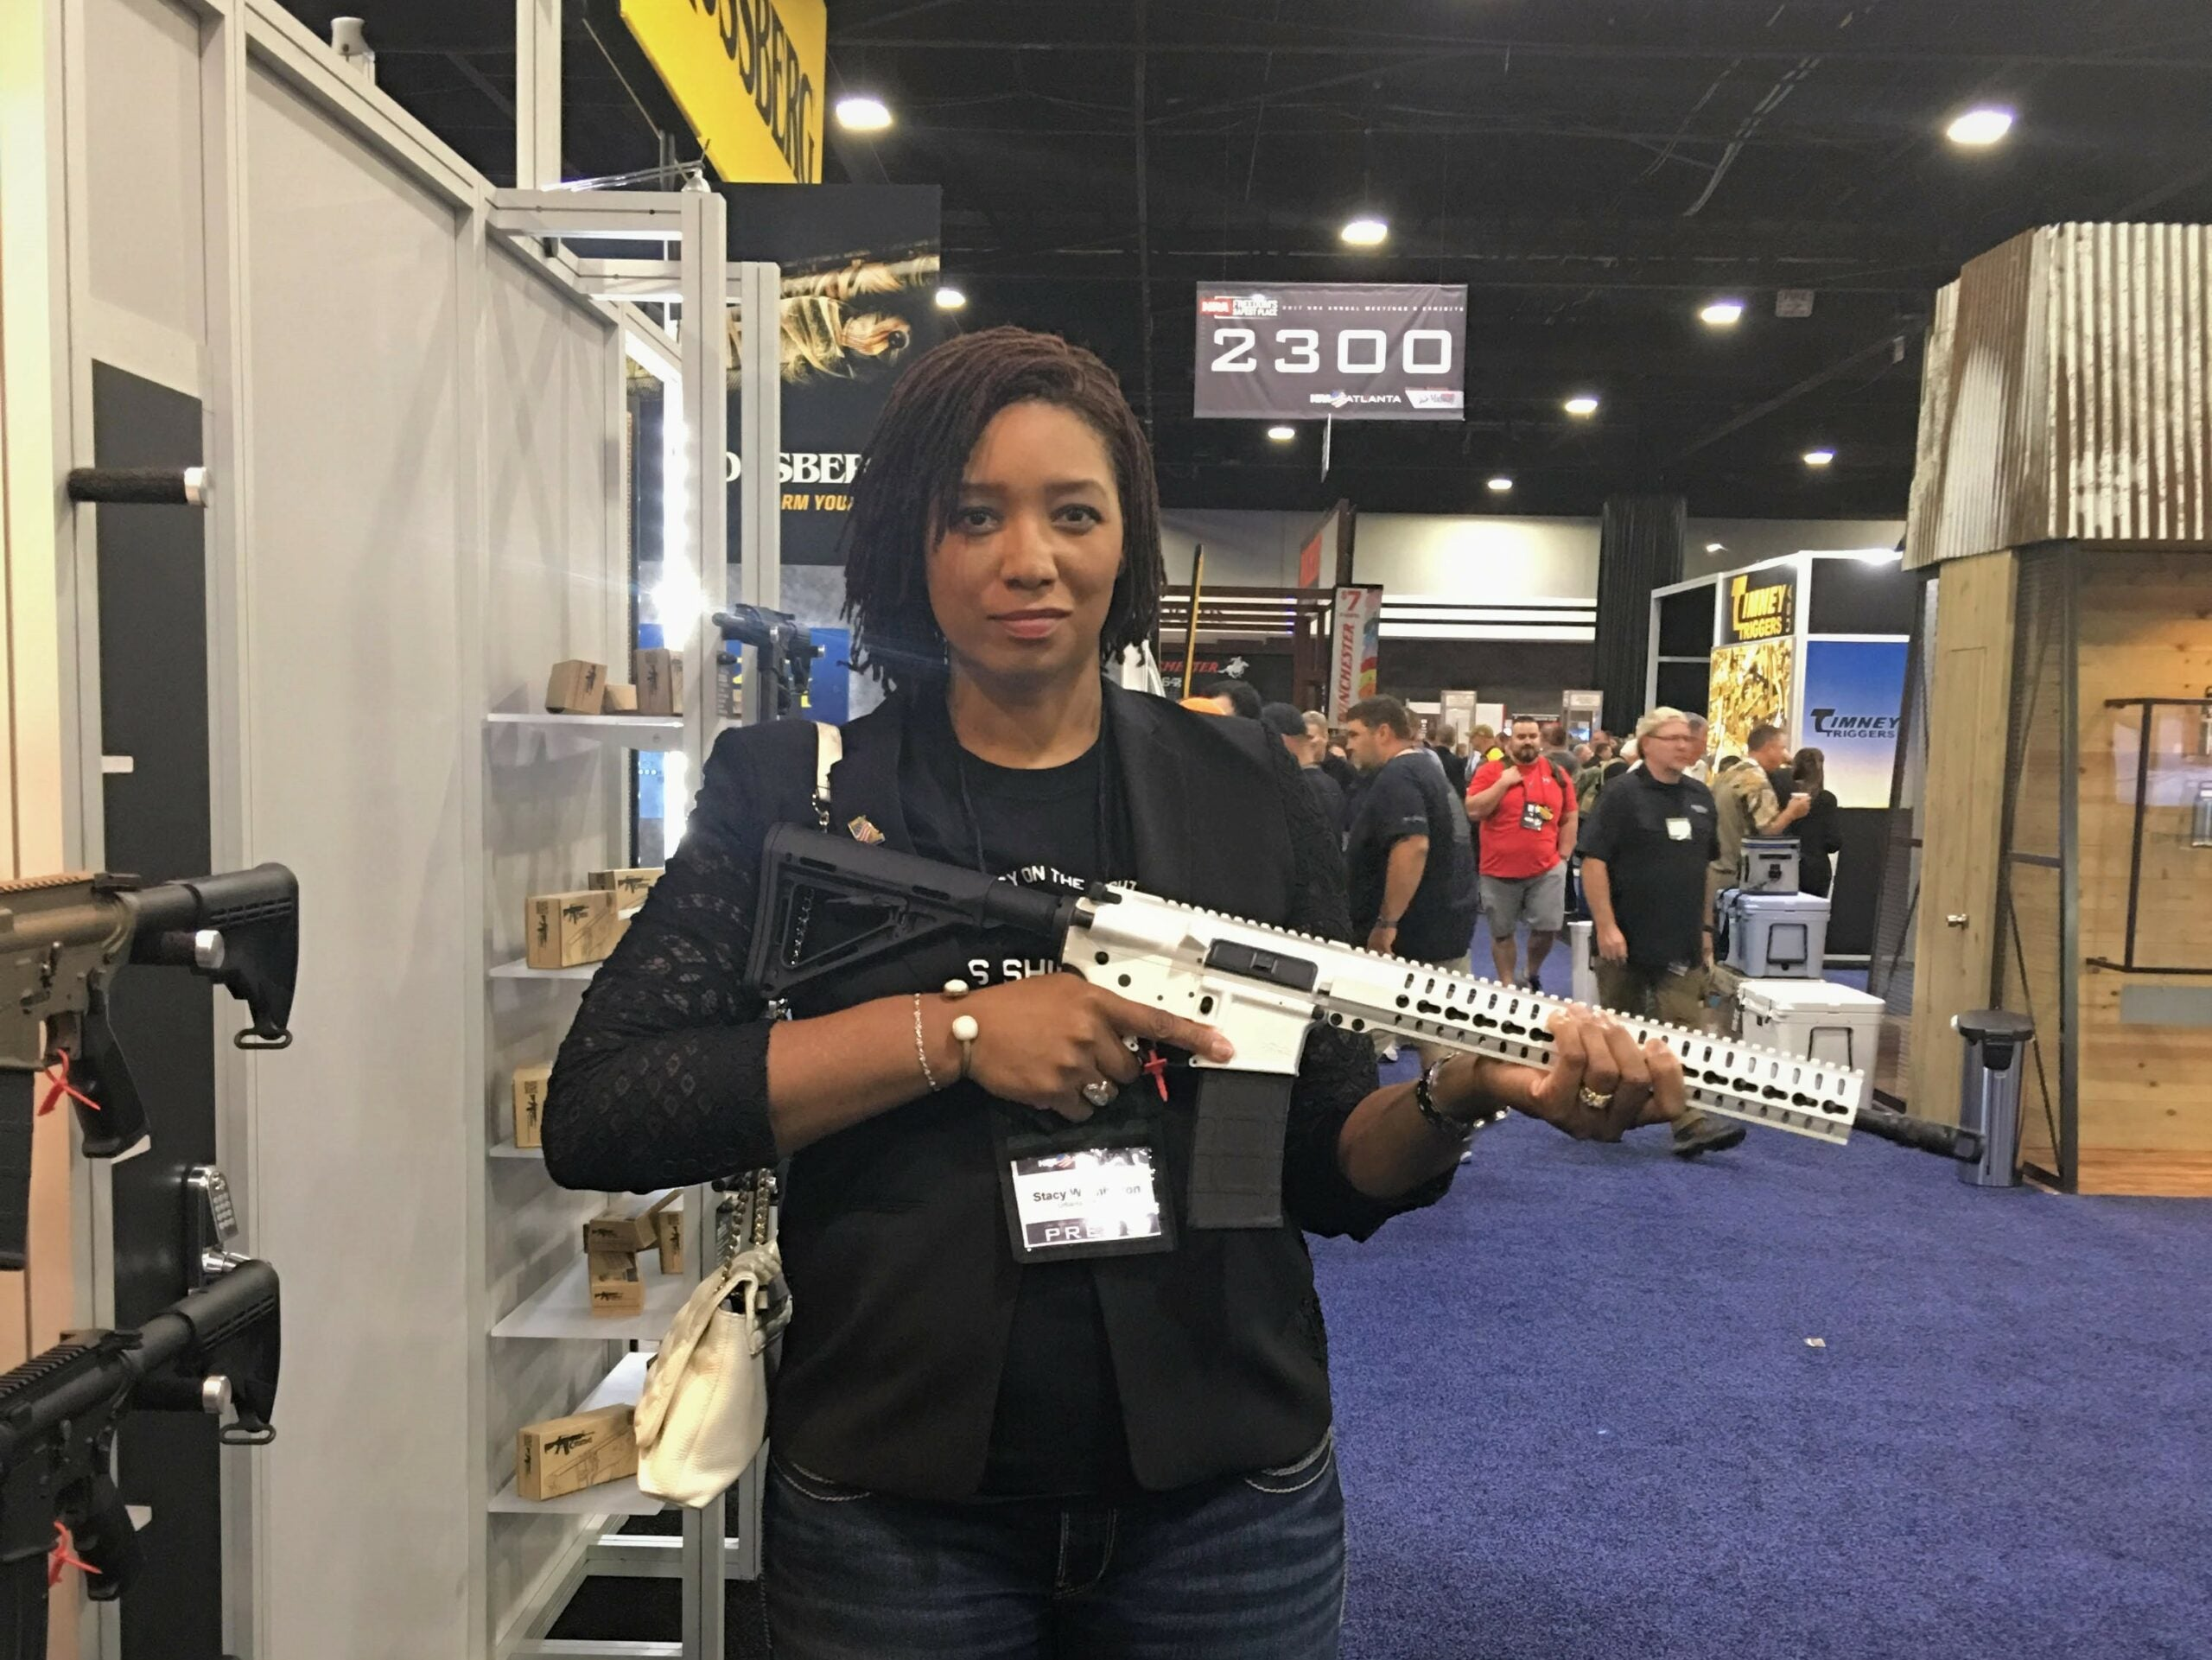 Columnist Suspended From Newspaper for Supporting NRA